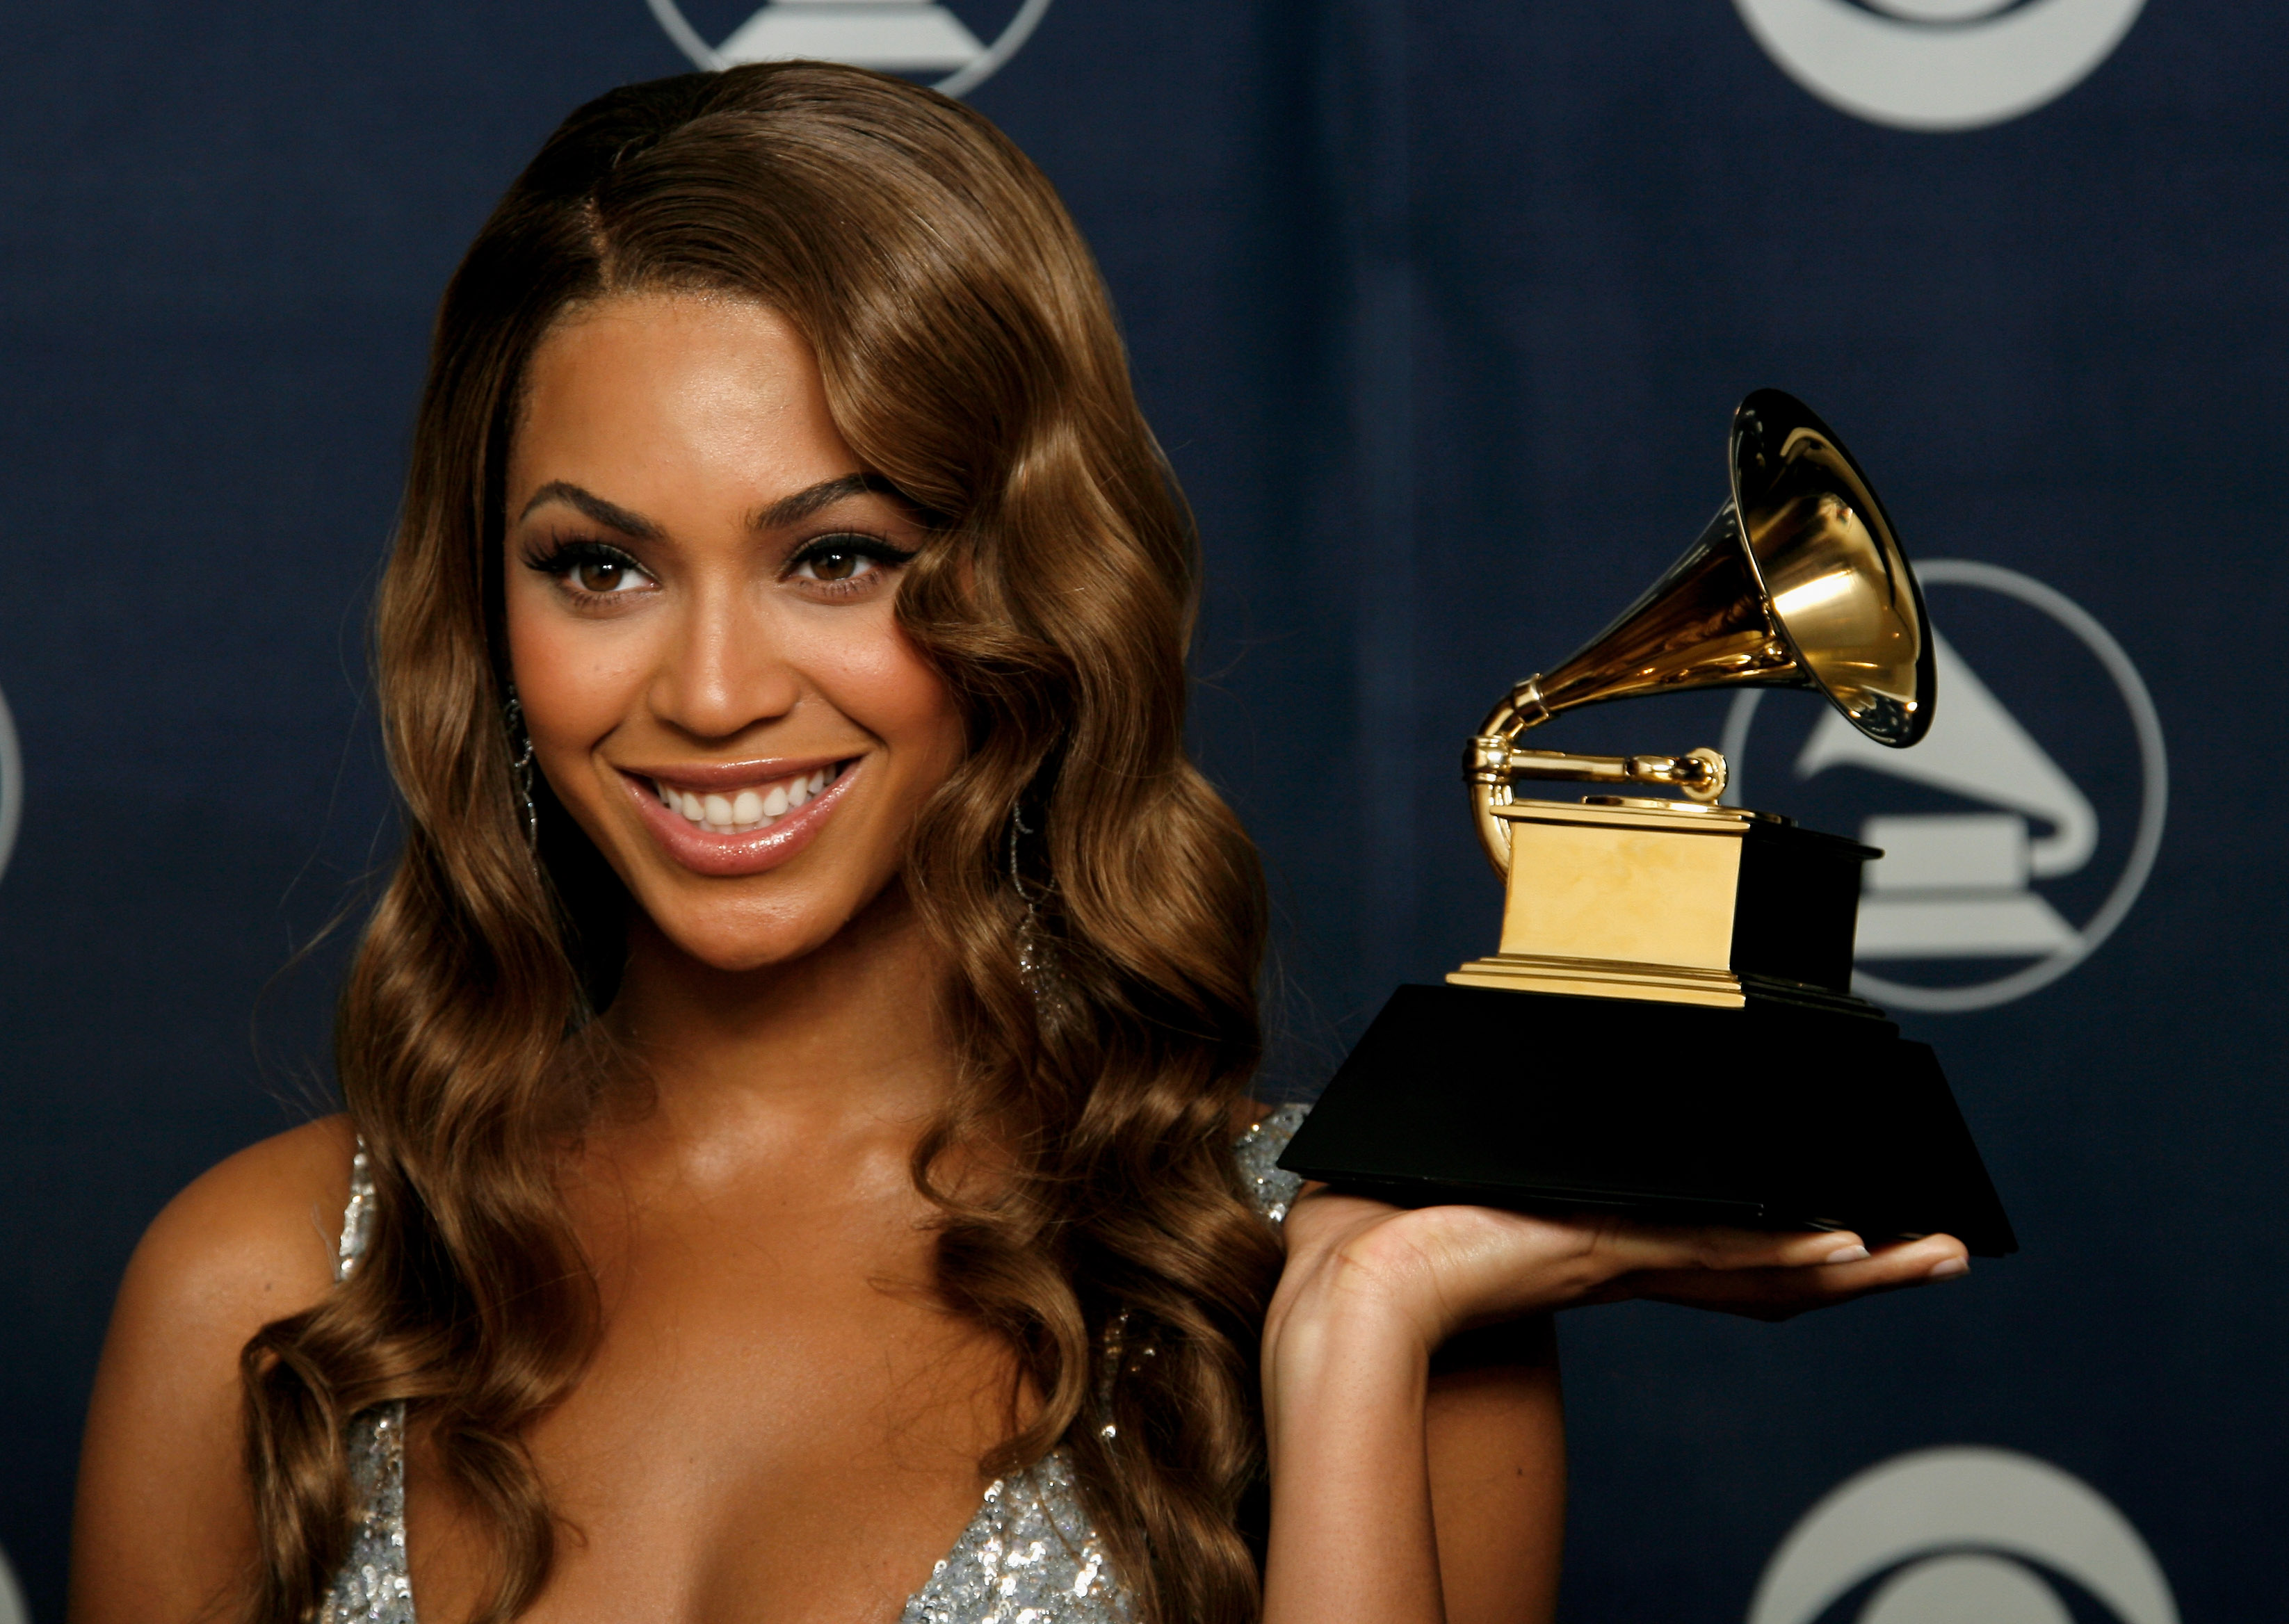 Beyoncé holds the award for Best Contemporary R&B Album in 2007. That award no longer exists.